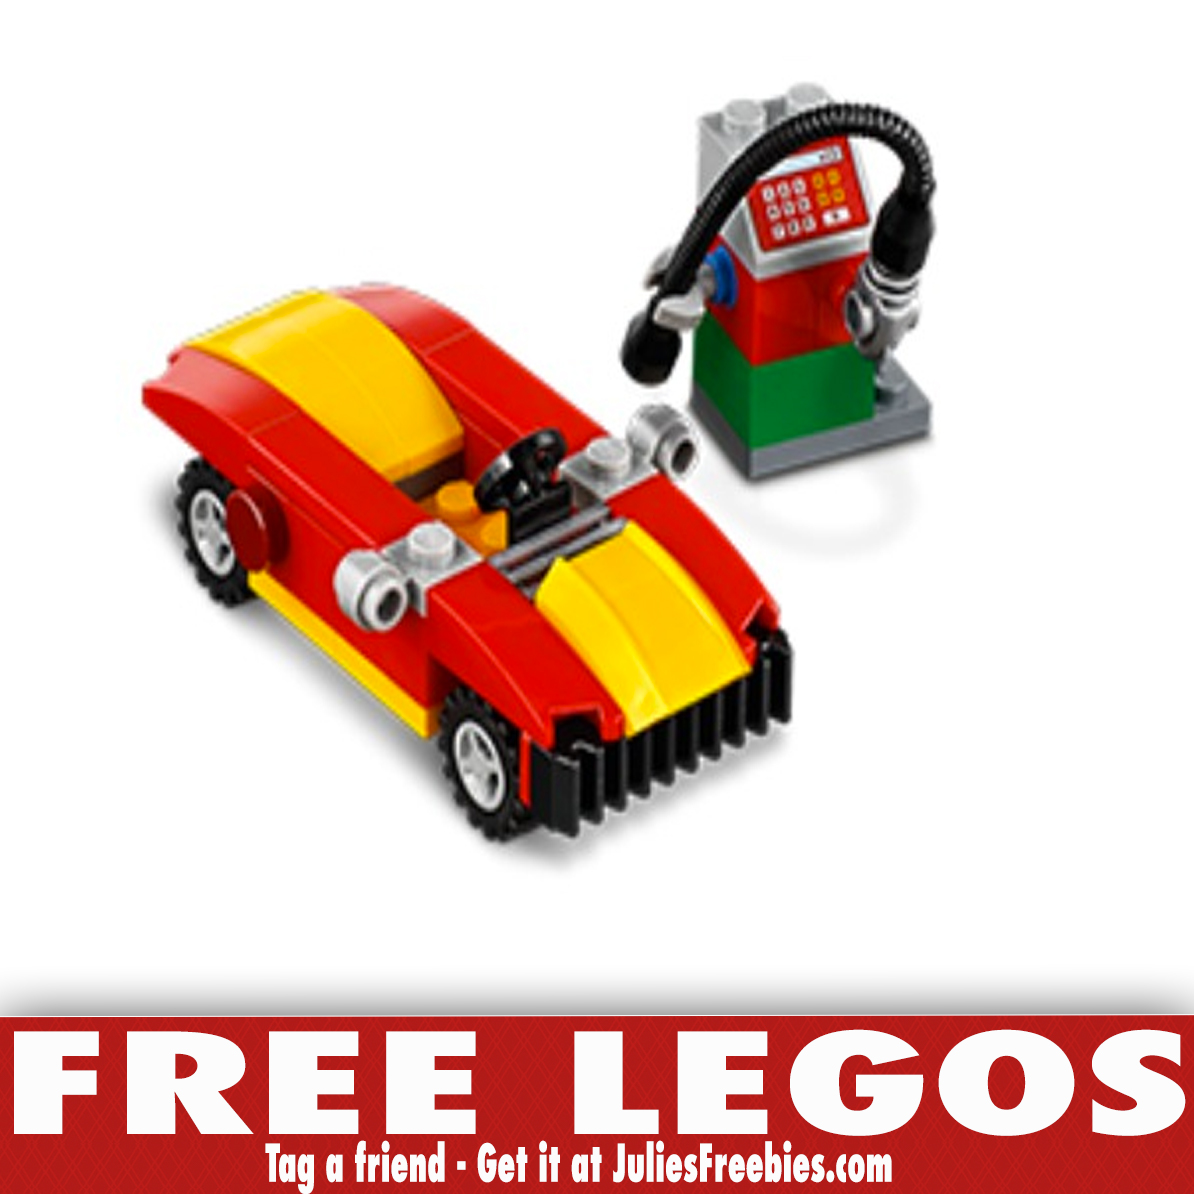 Free LEGO Car and Gas Pump Build Event - Julie's Freebies